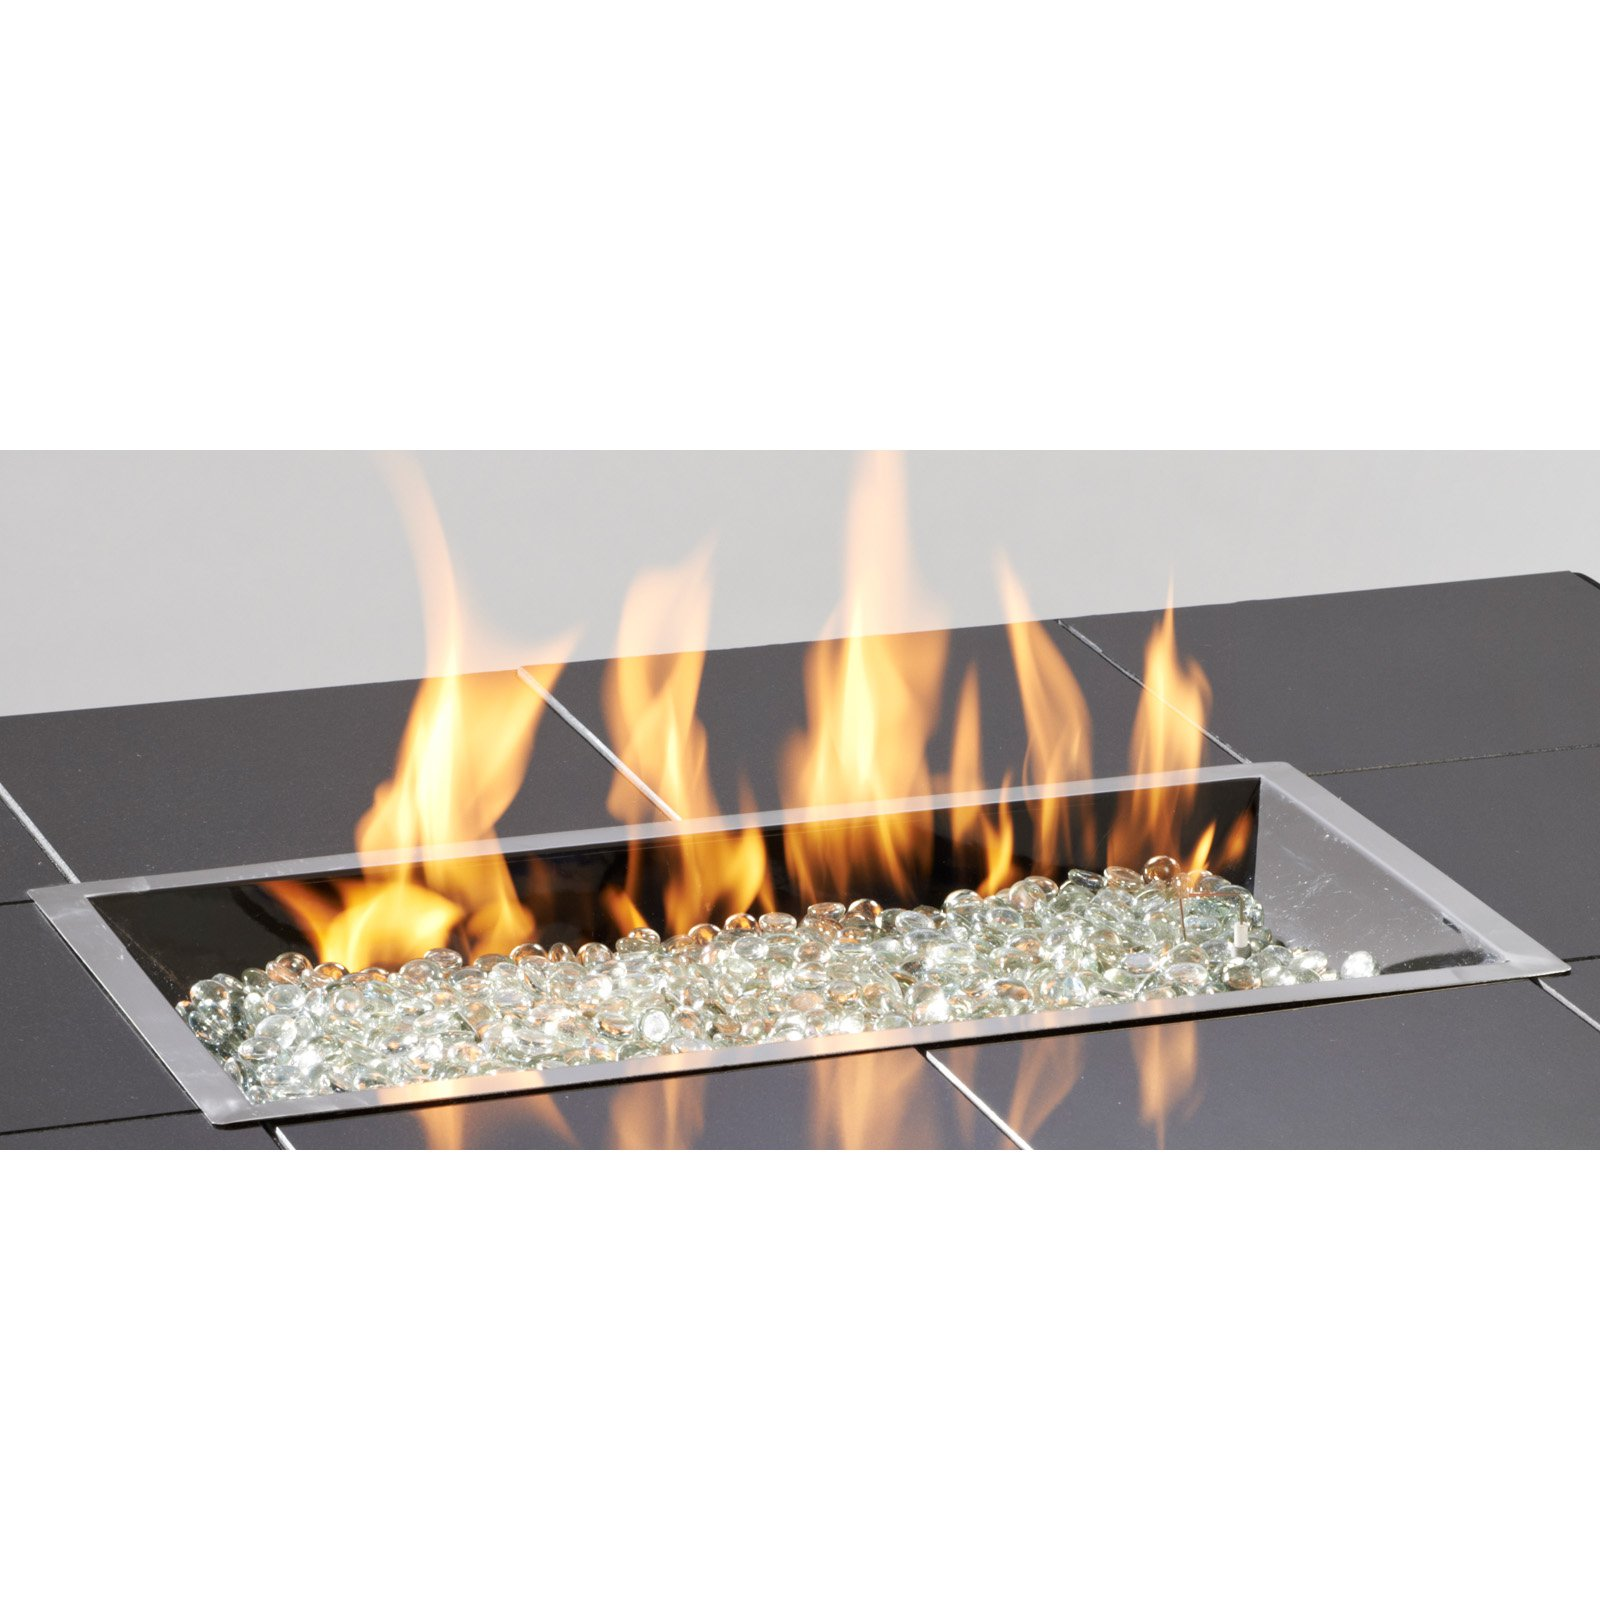 Outdoor GreatRoom CF-1224-BRN Honey Glow Brown Color Coated Crystal Fire Burner, 12x 24 Rectangle